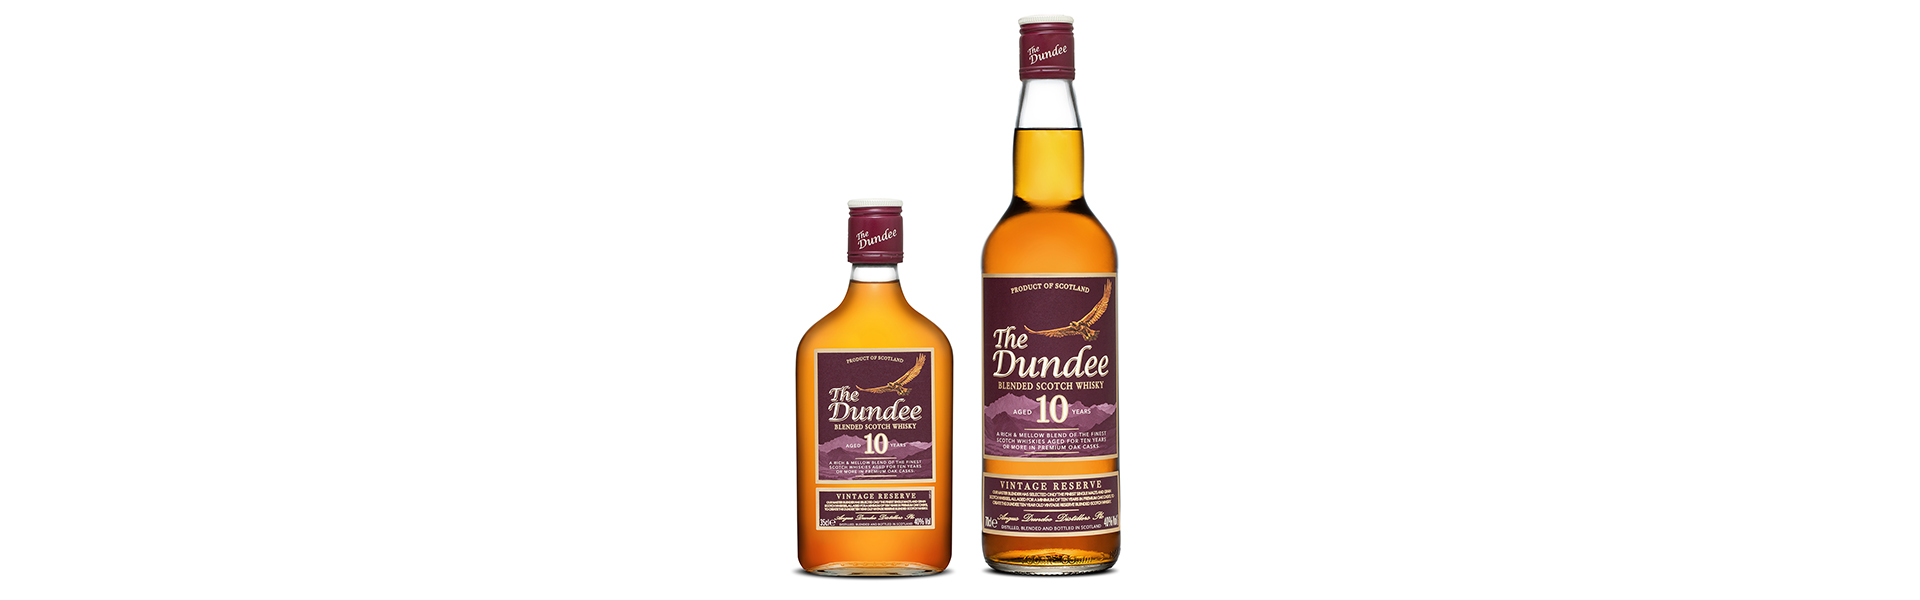 The Dundee Blended Scotch Whisky släpper dubbellansering.